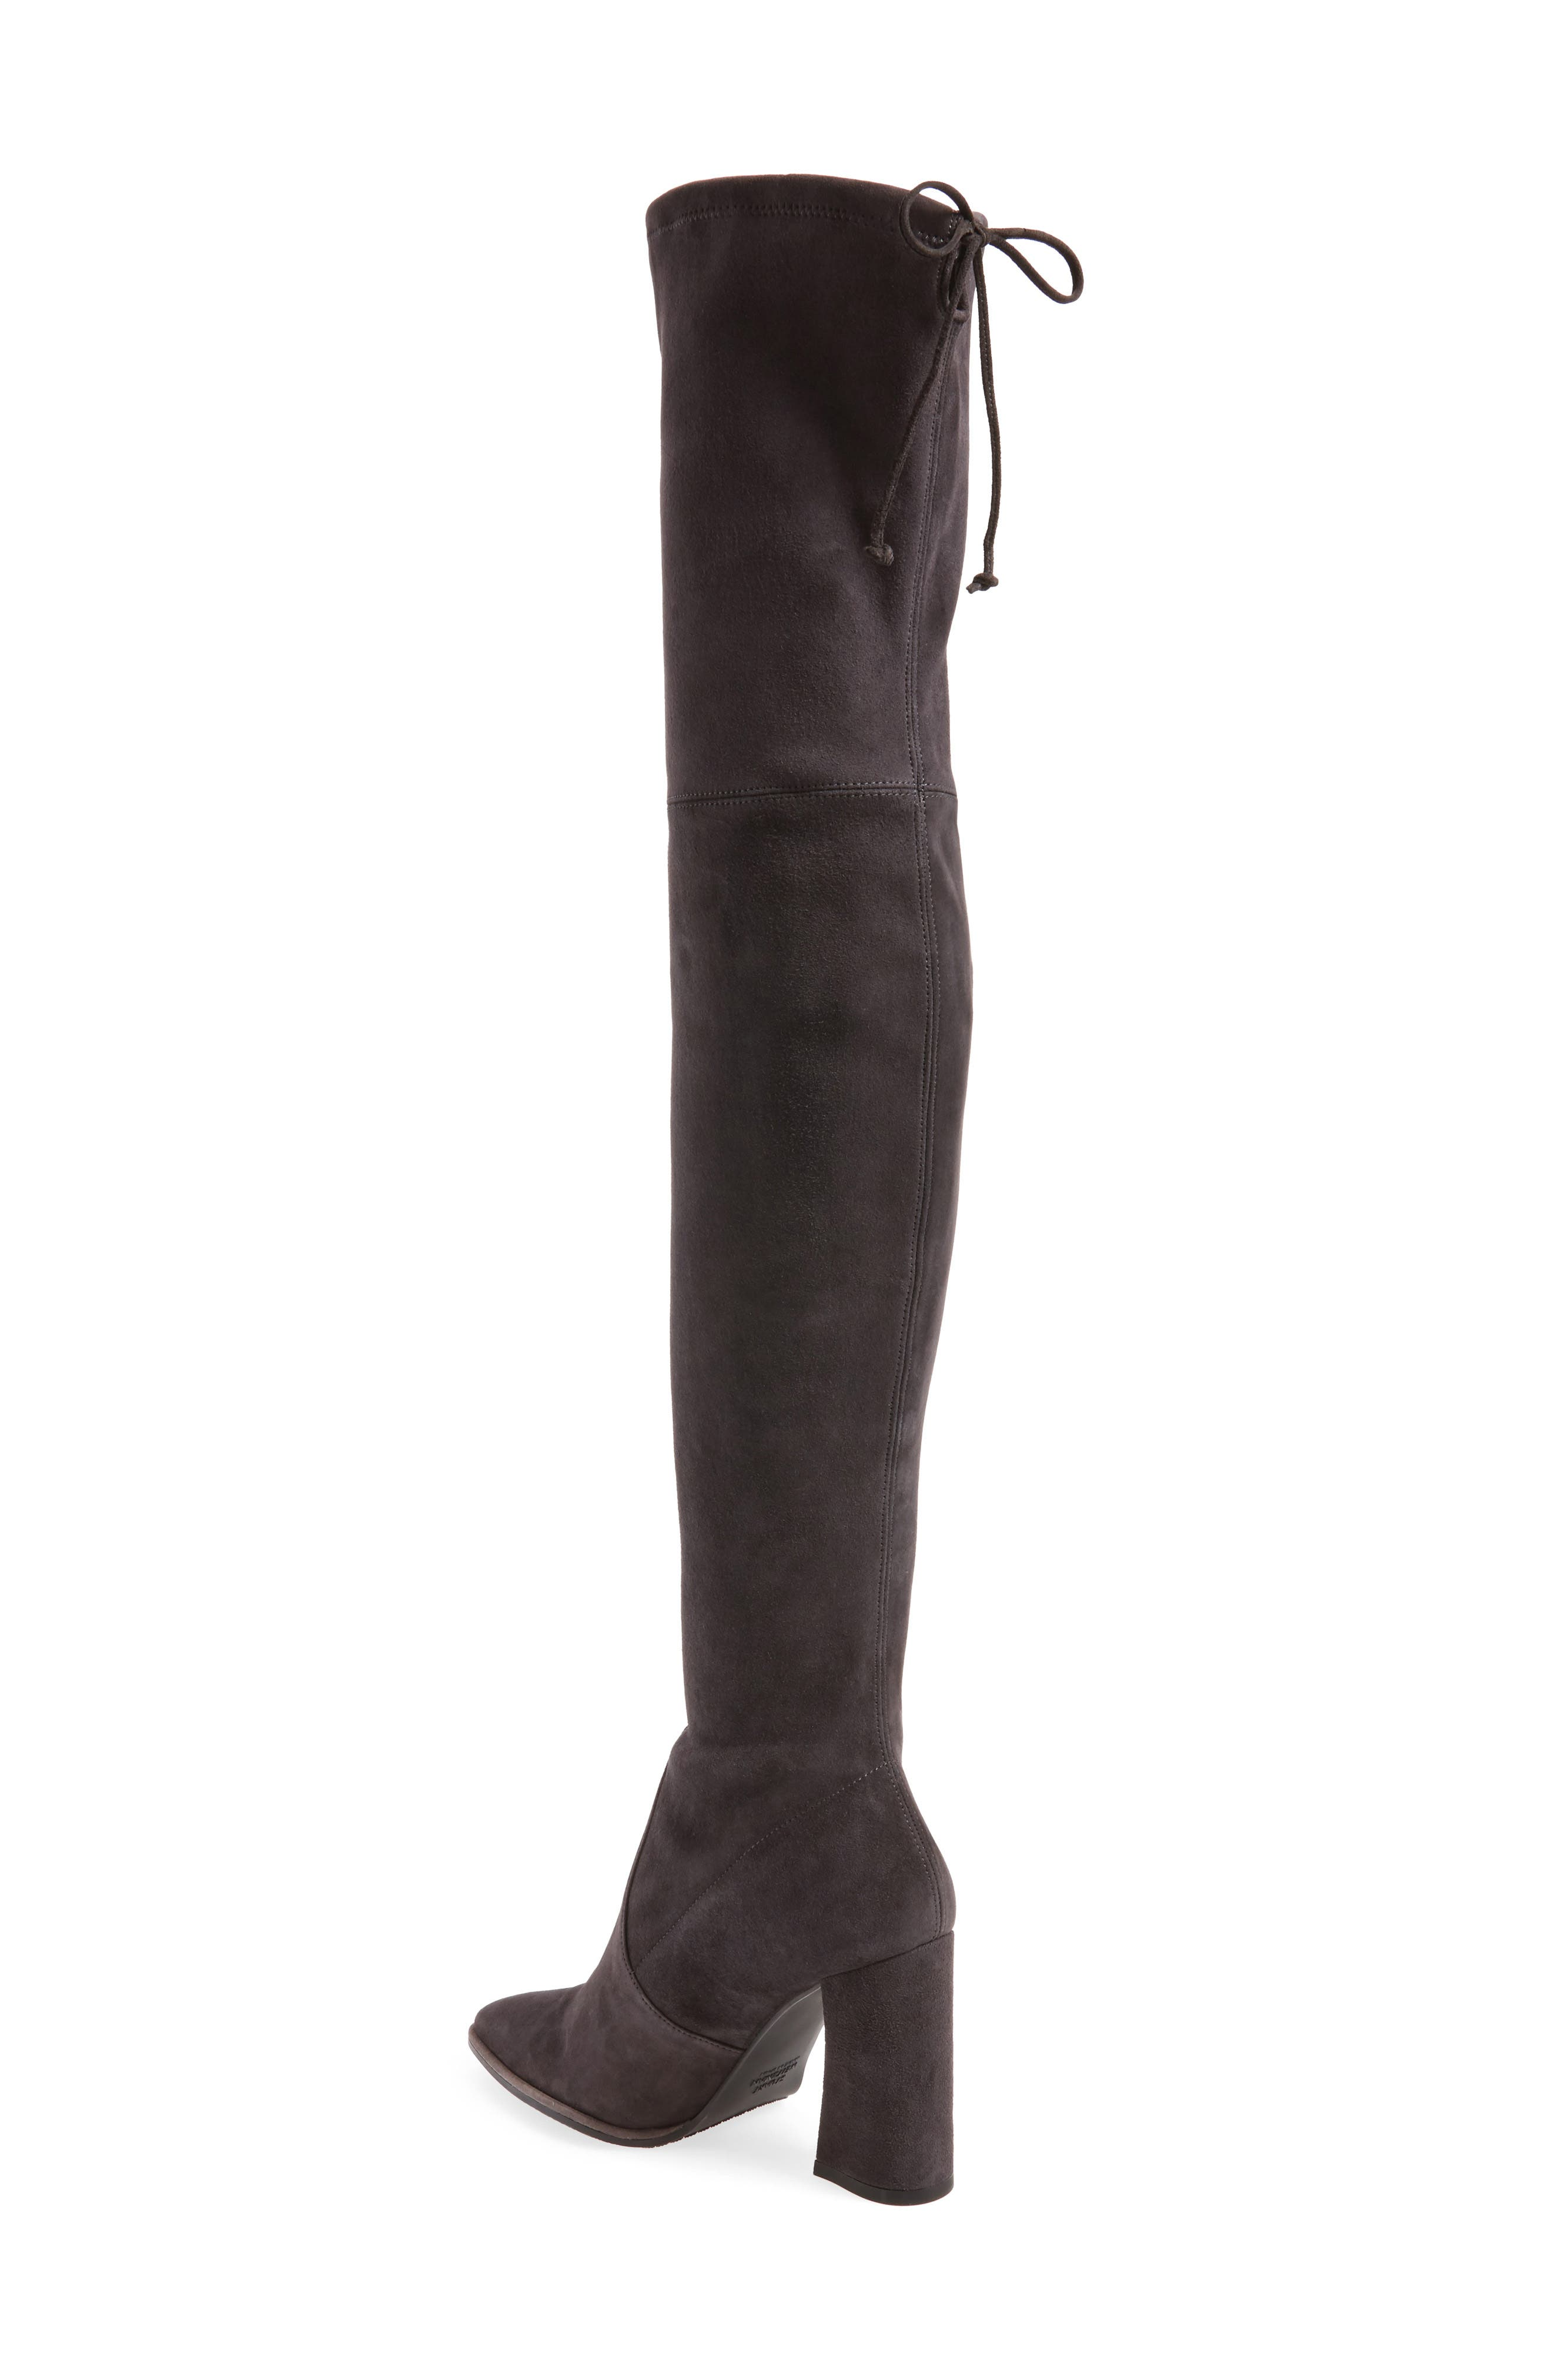 Funland Over the Knee Boot,                             Alternate thumbnail 2, color,                             Anthracite Suede